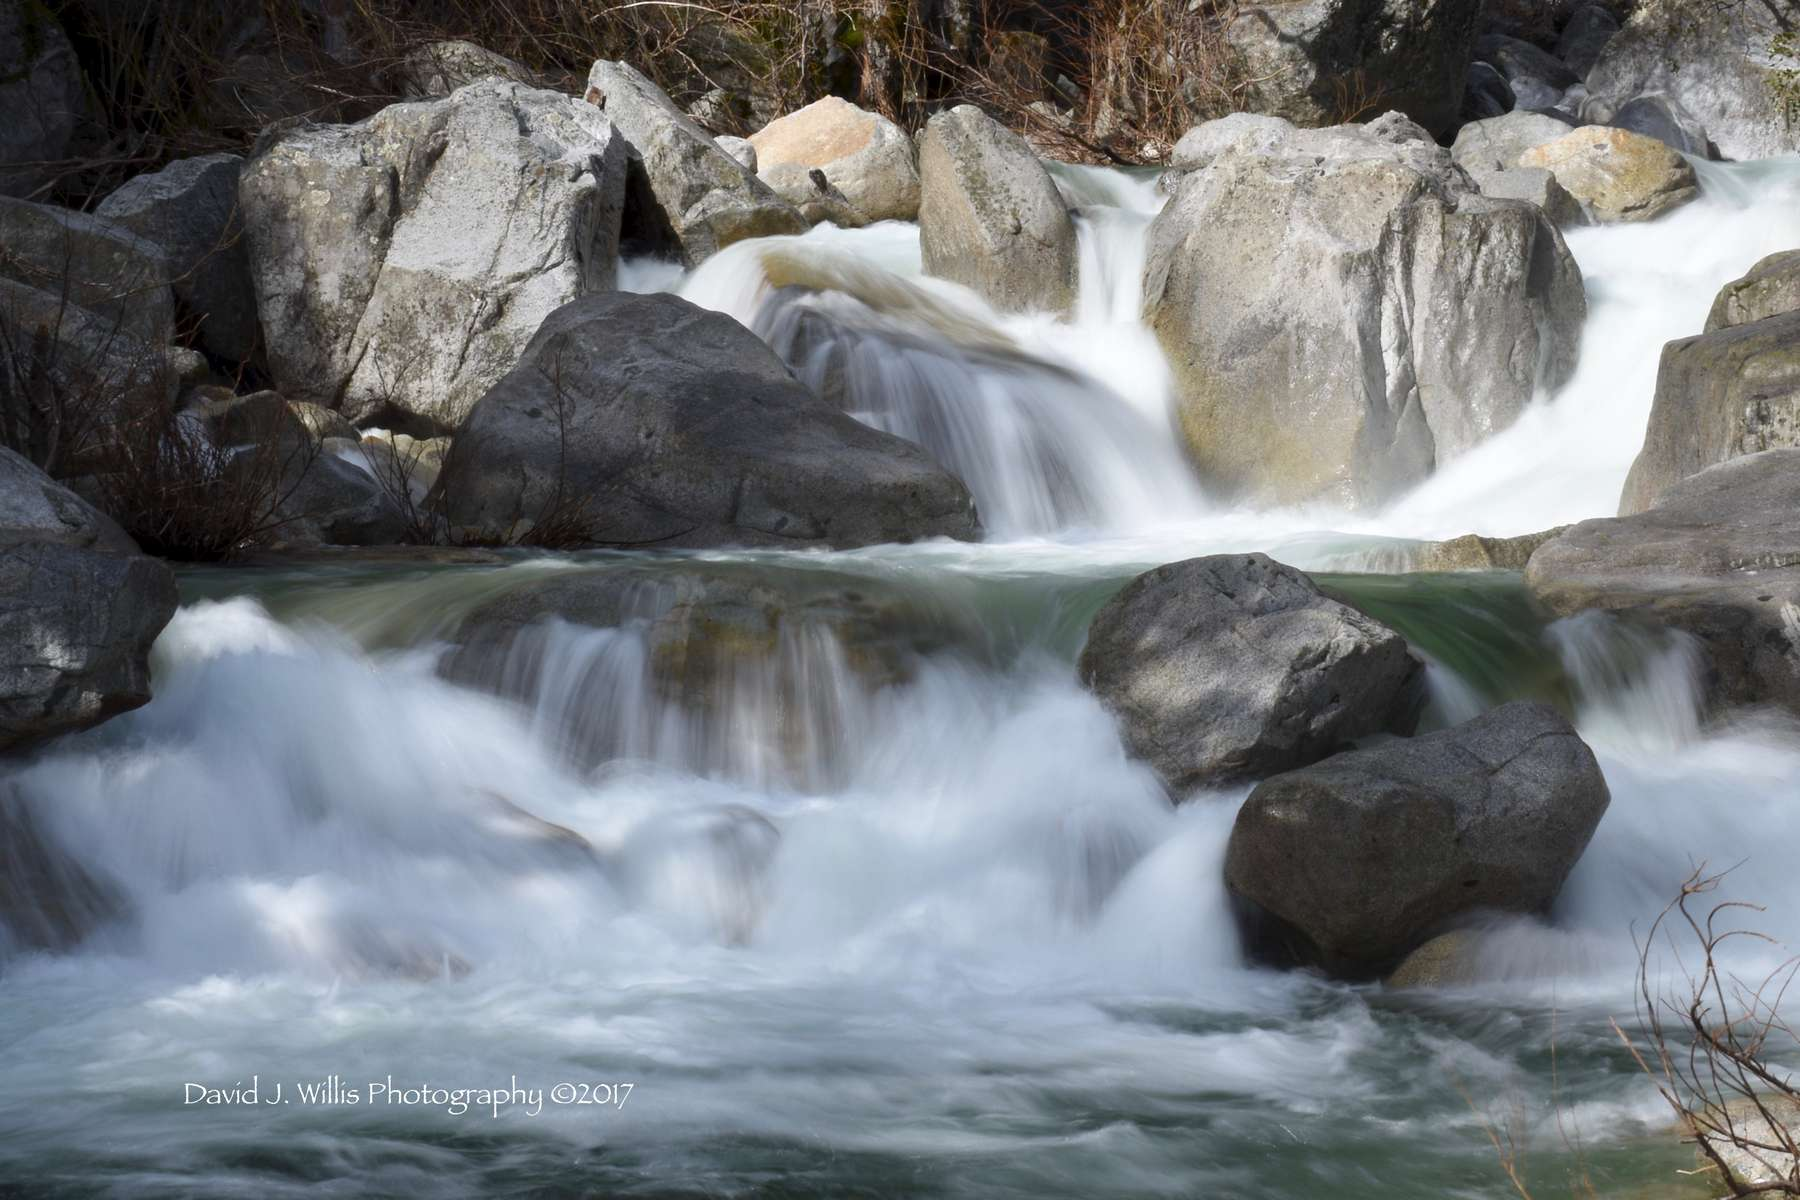 Rock Creek I, Feather River Canyon, Plumas County